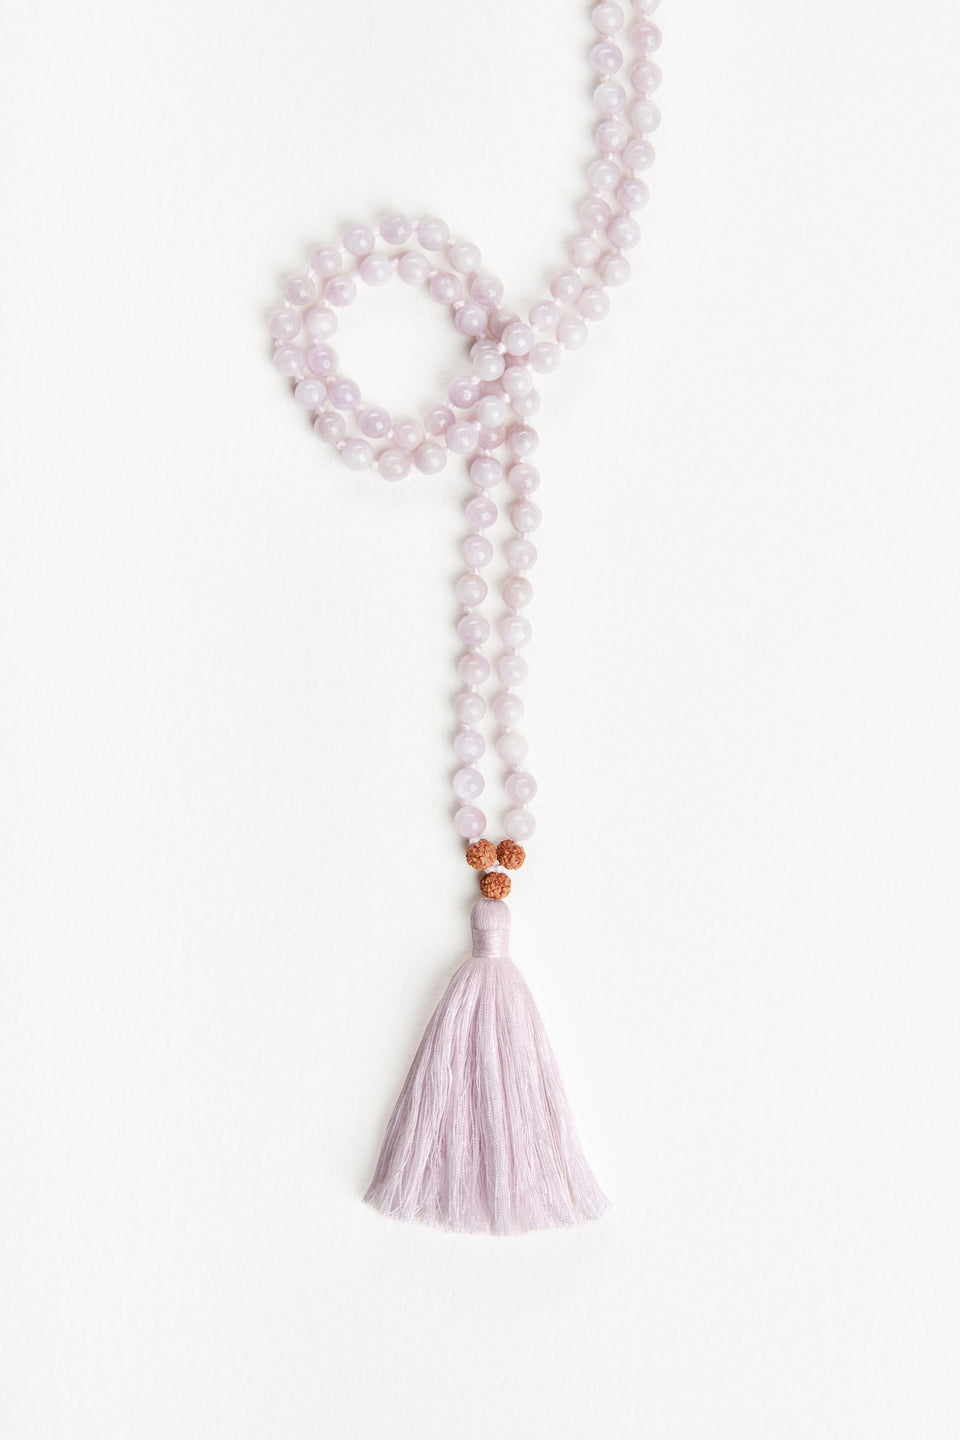 I Am Connected Mala (Limited Edition)